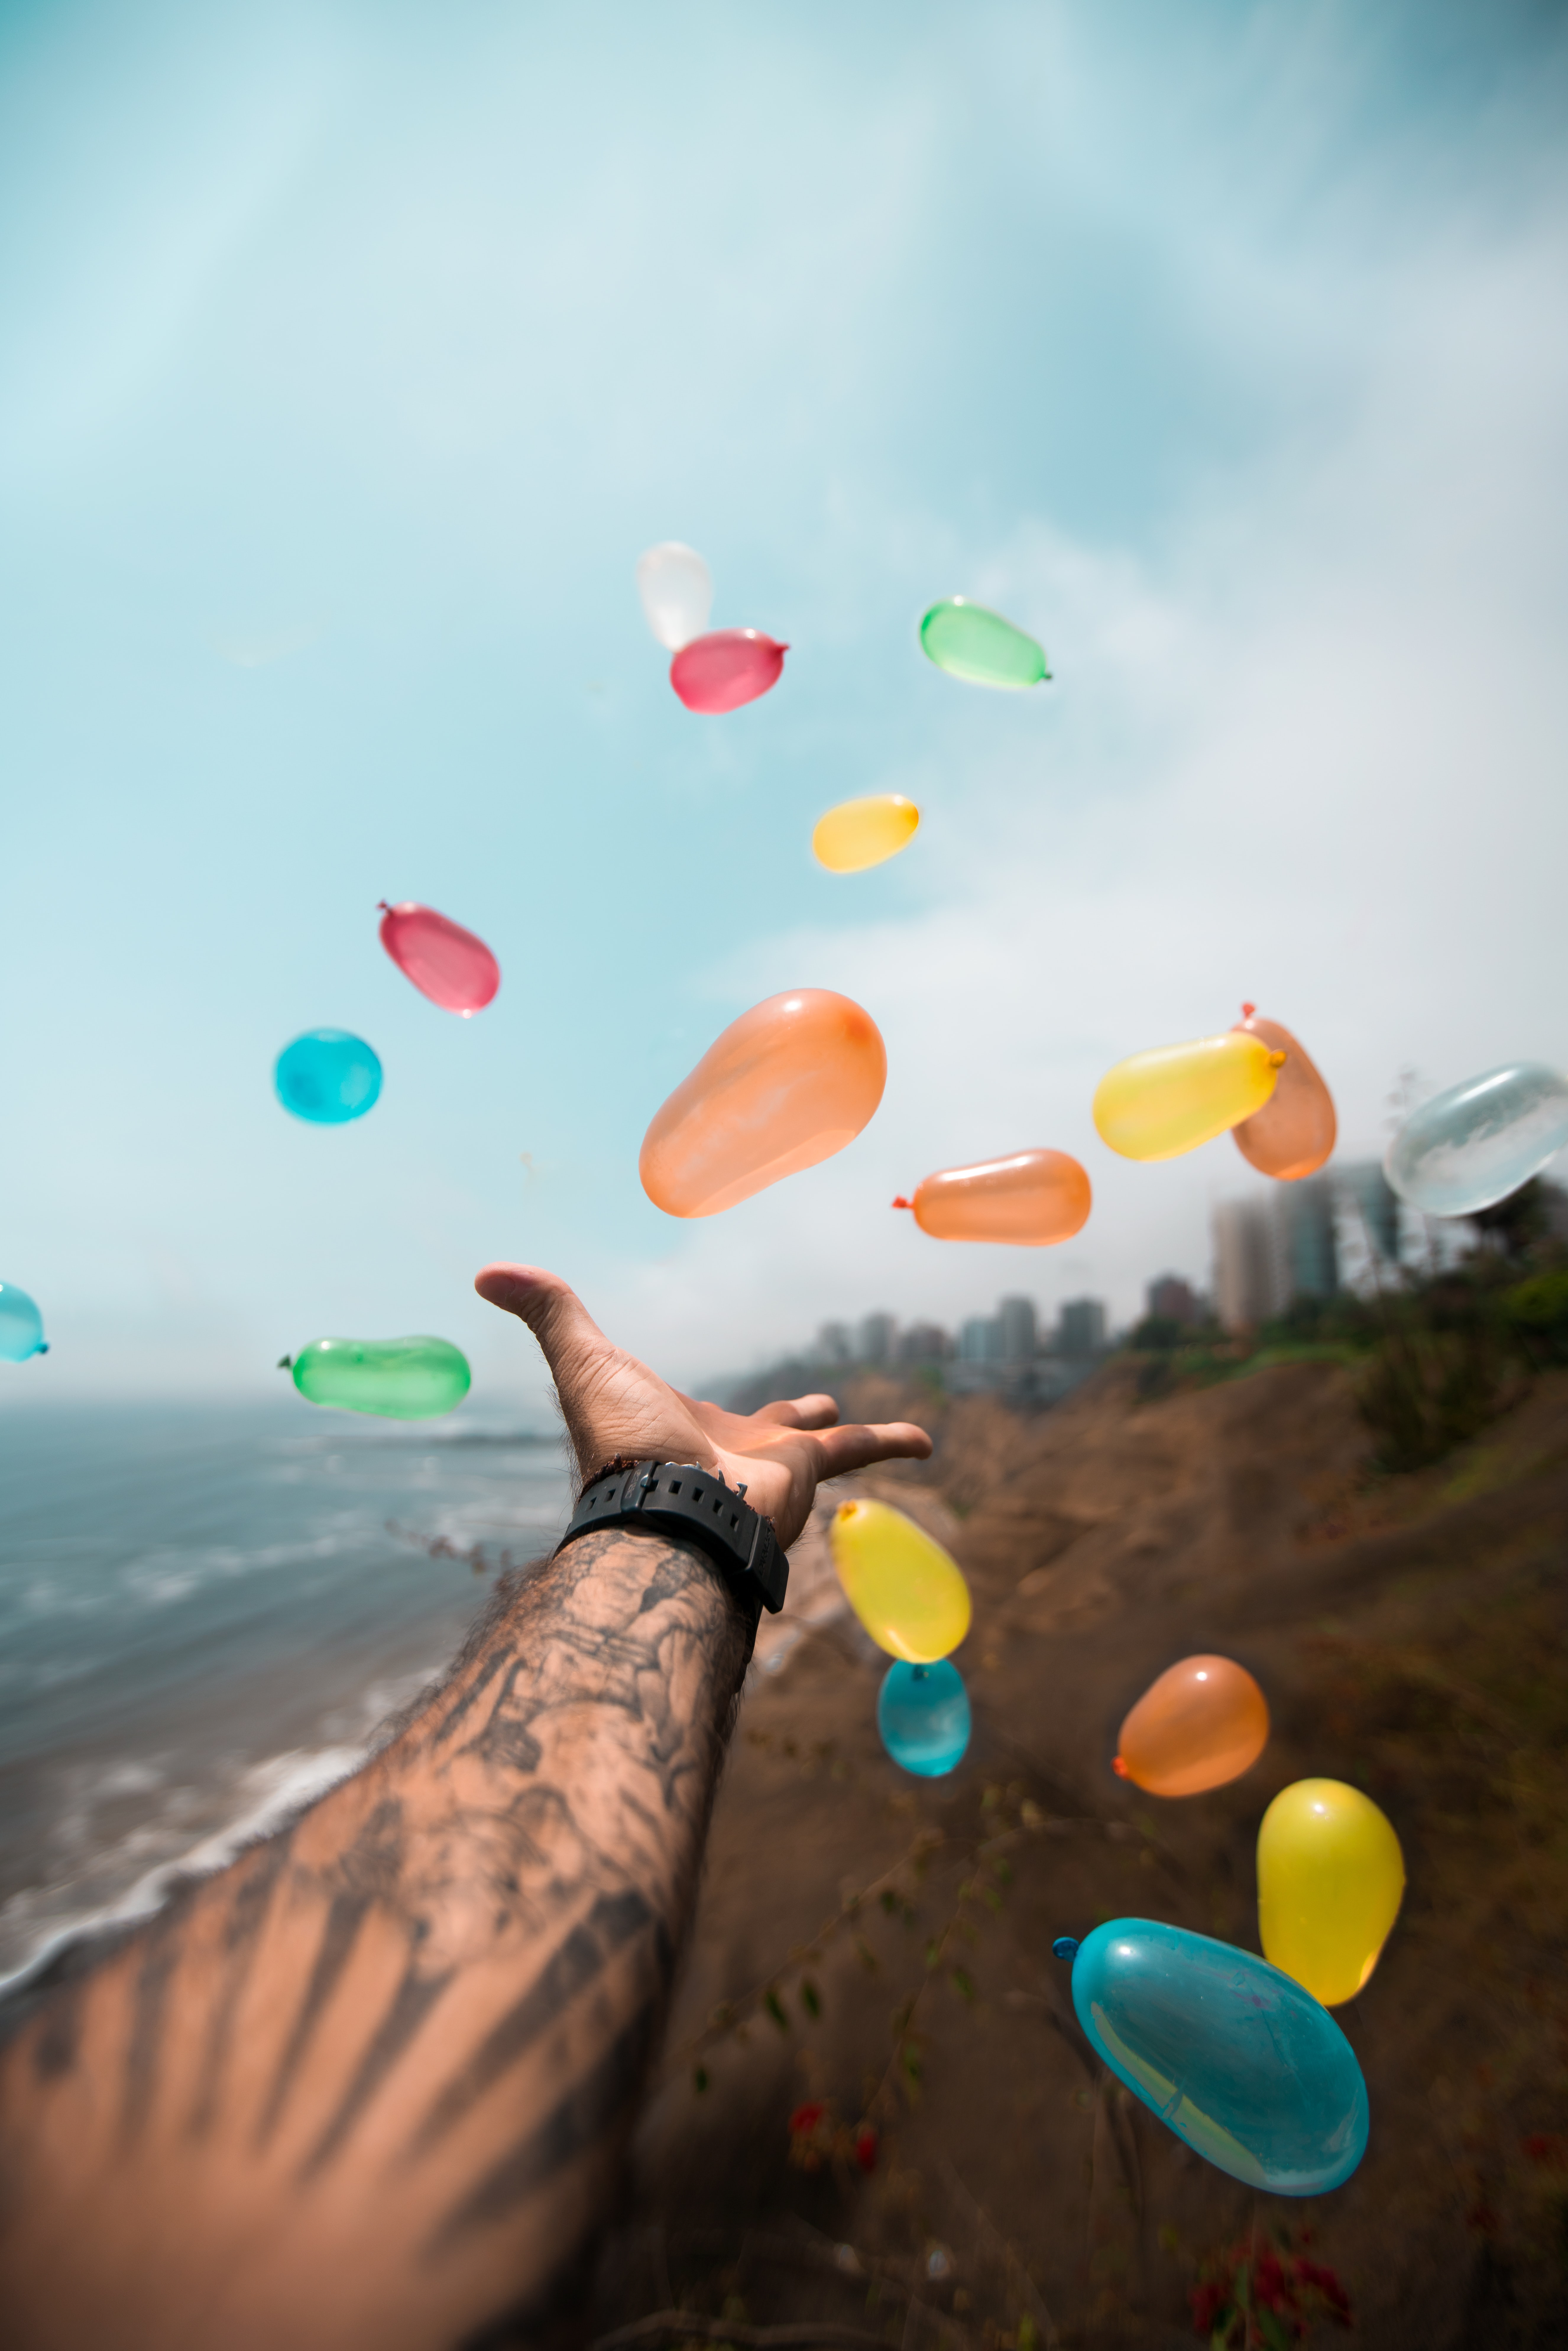 person throwing balloons